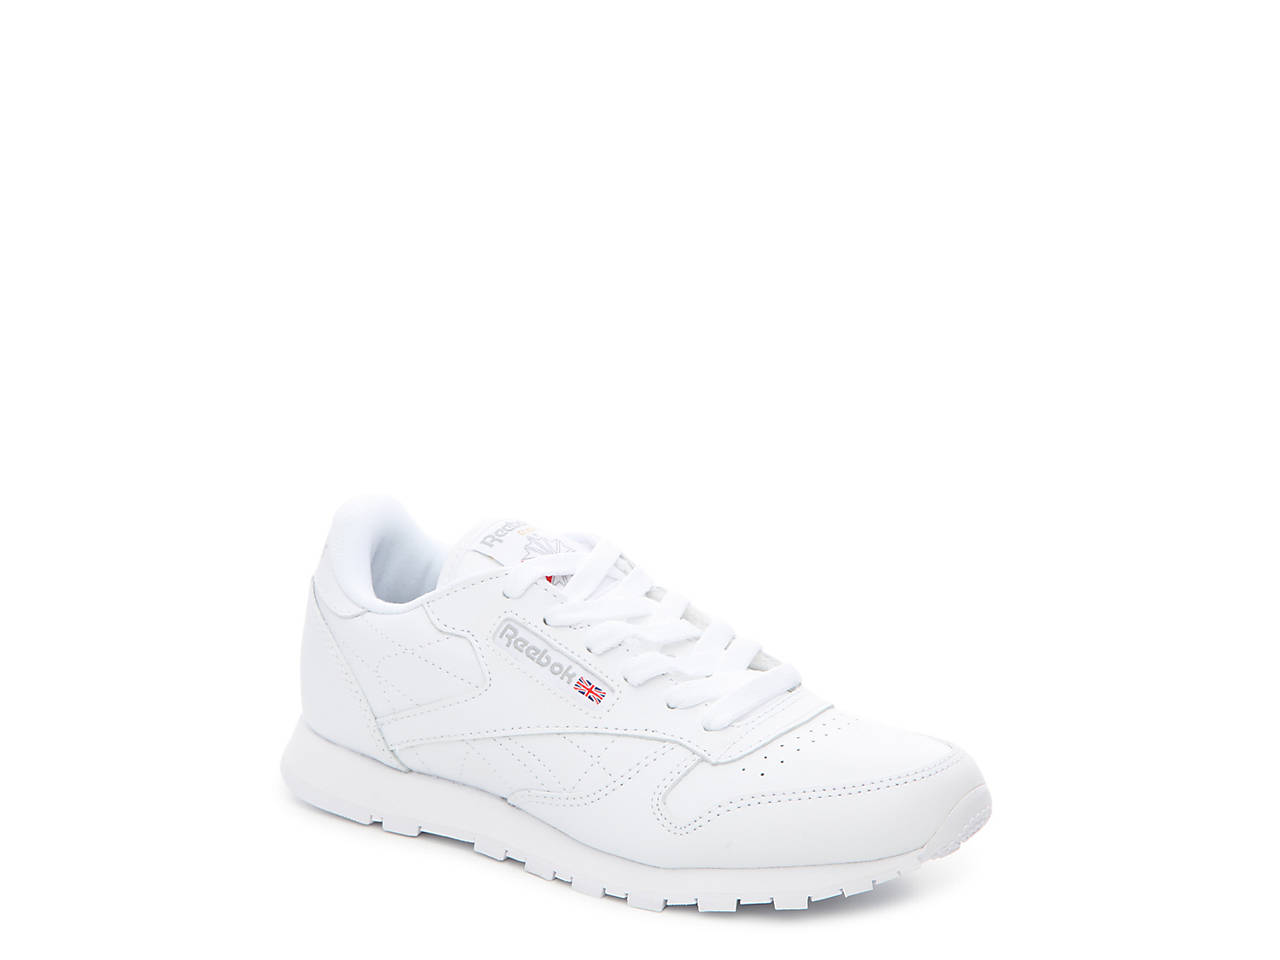 1a41c61848545 Reebok Classic Leather Youth Sneaker Kids Shoes